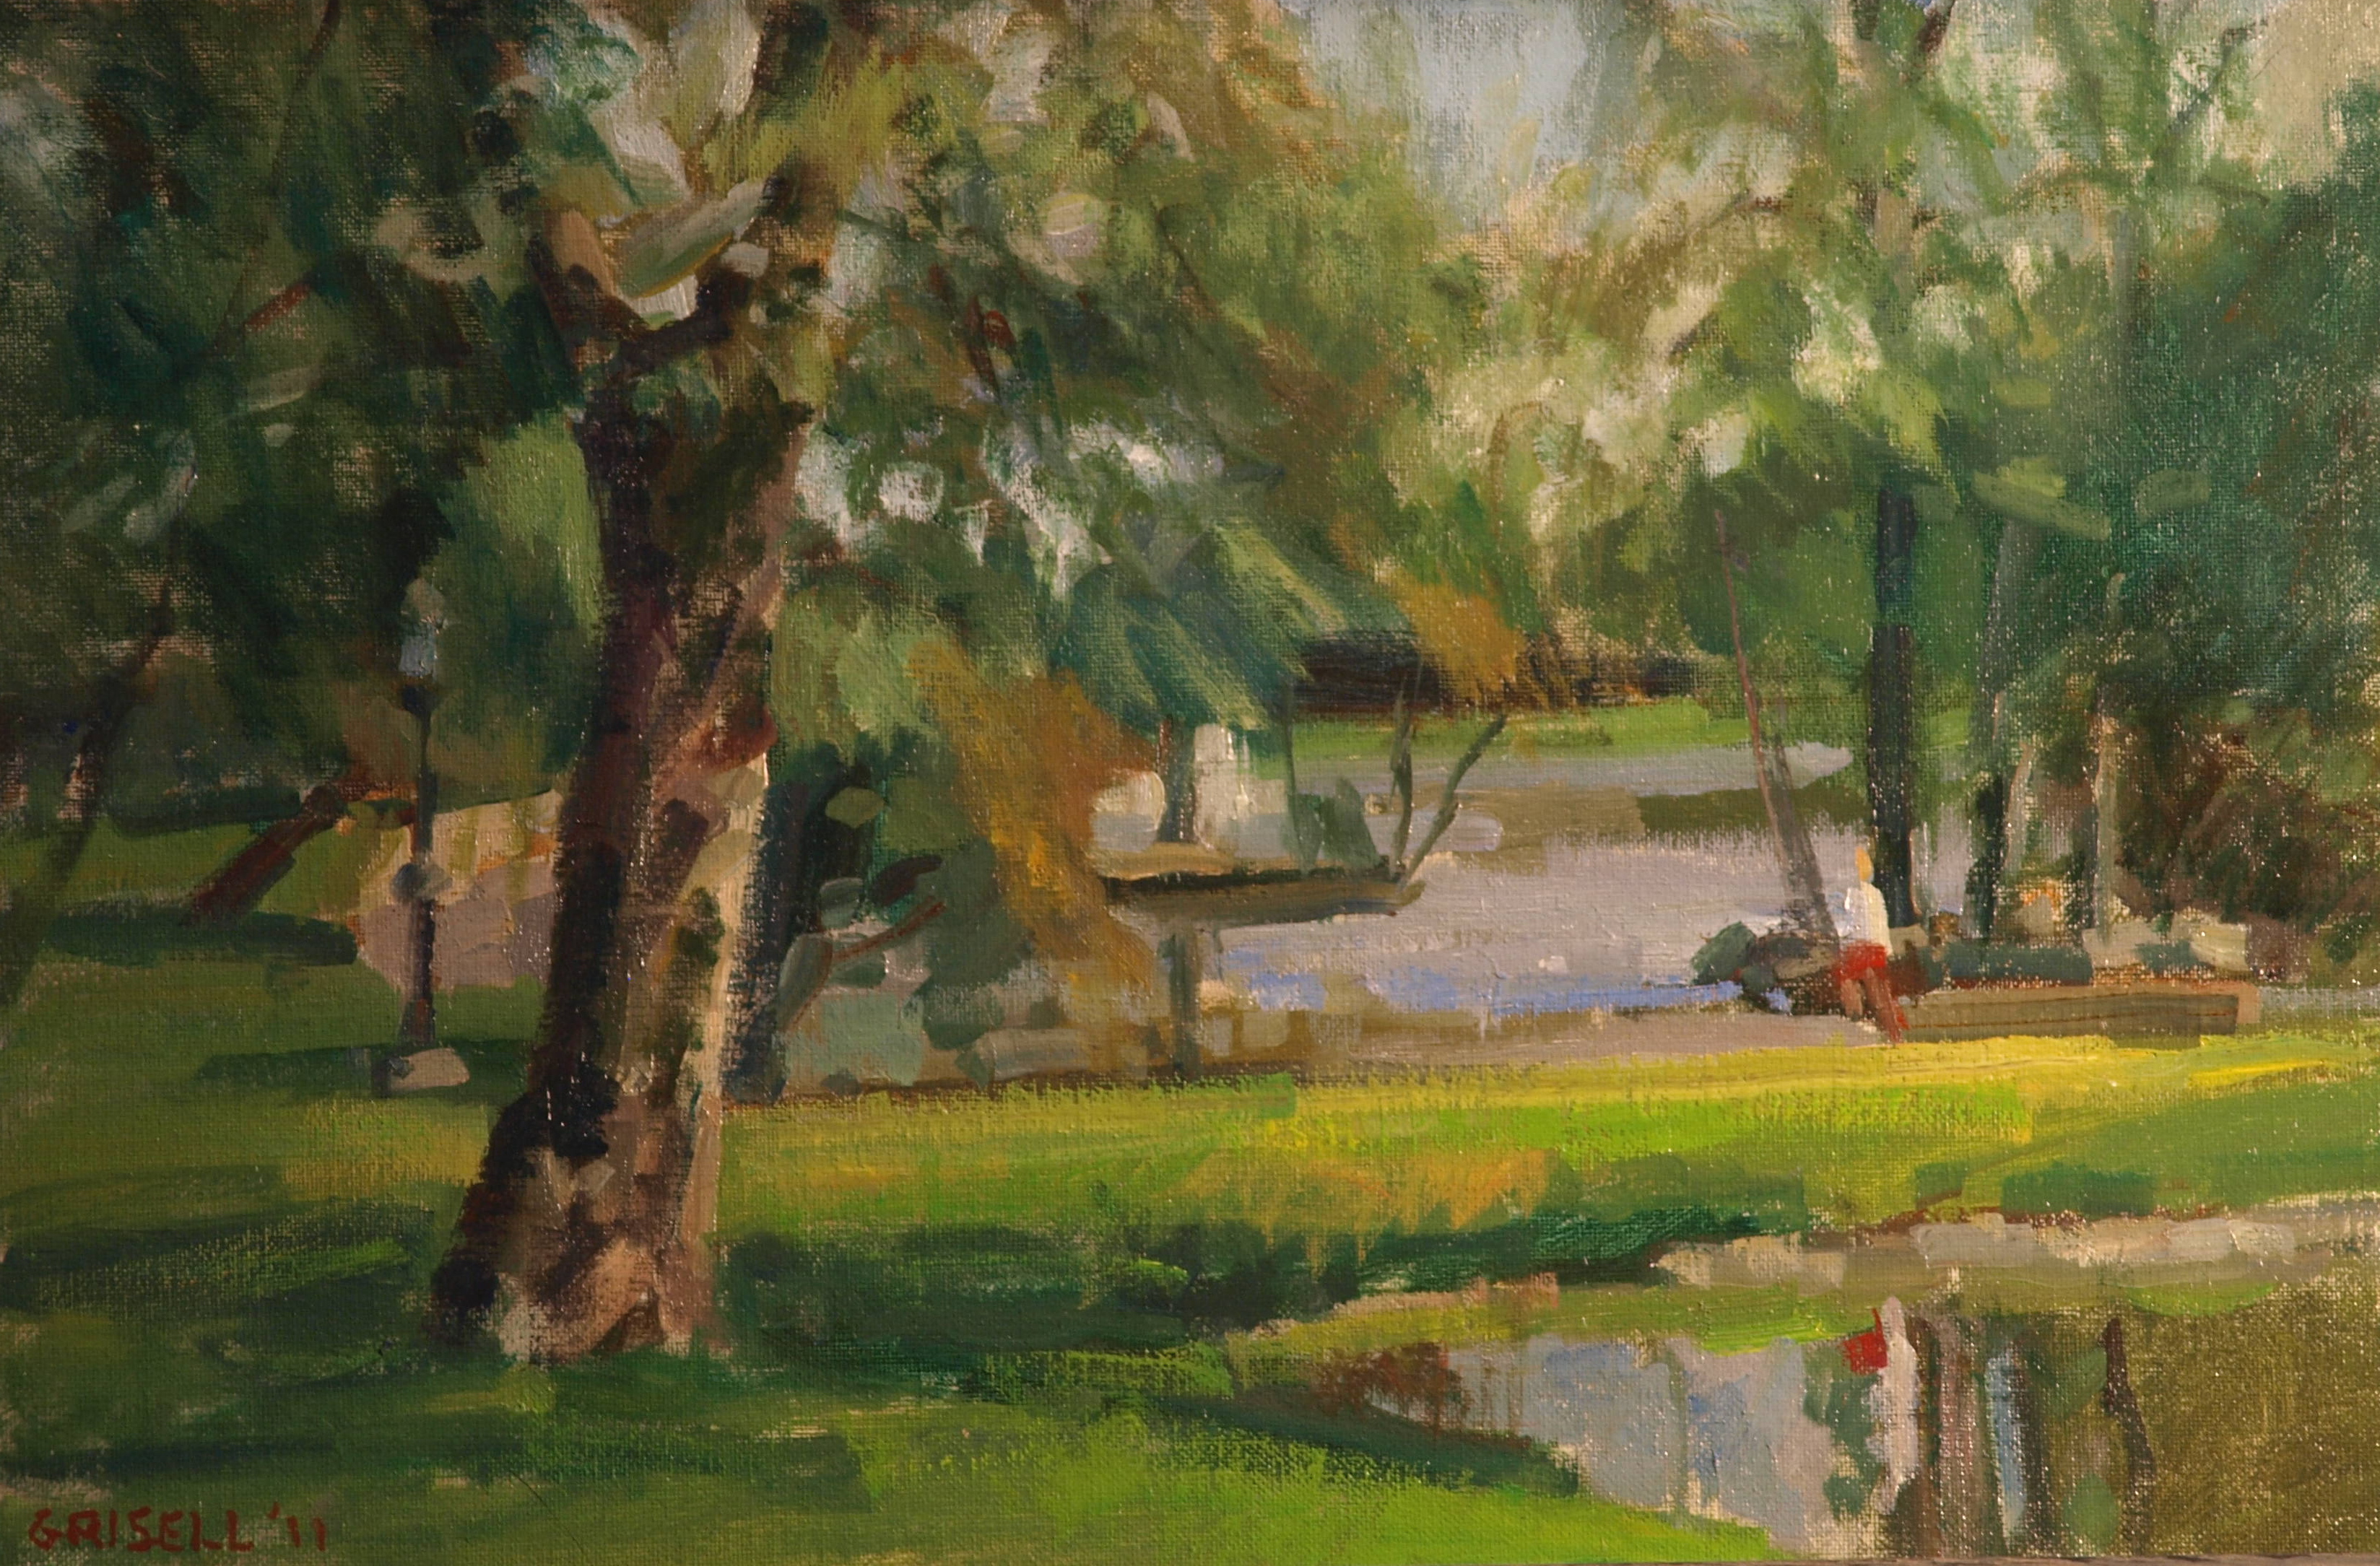 Tilley Park, Oil on Canvas on Panel, 12 x 18 Inches, by Susan Grisell, $275